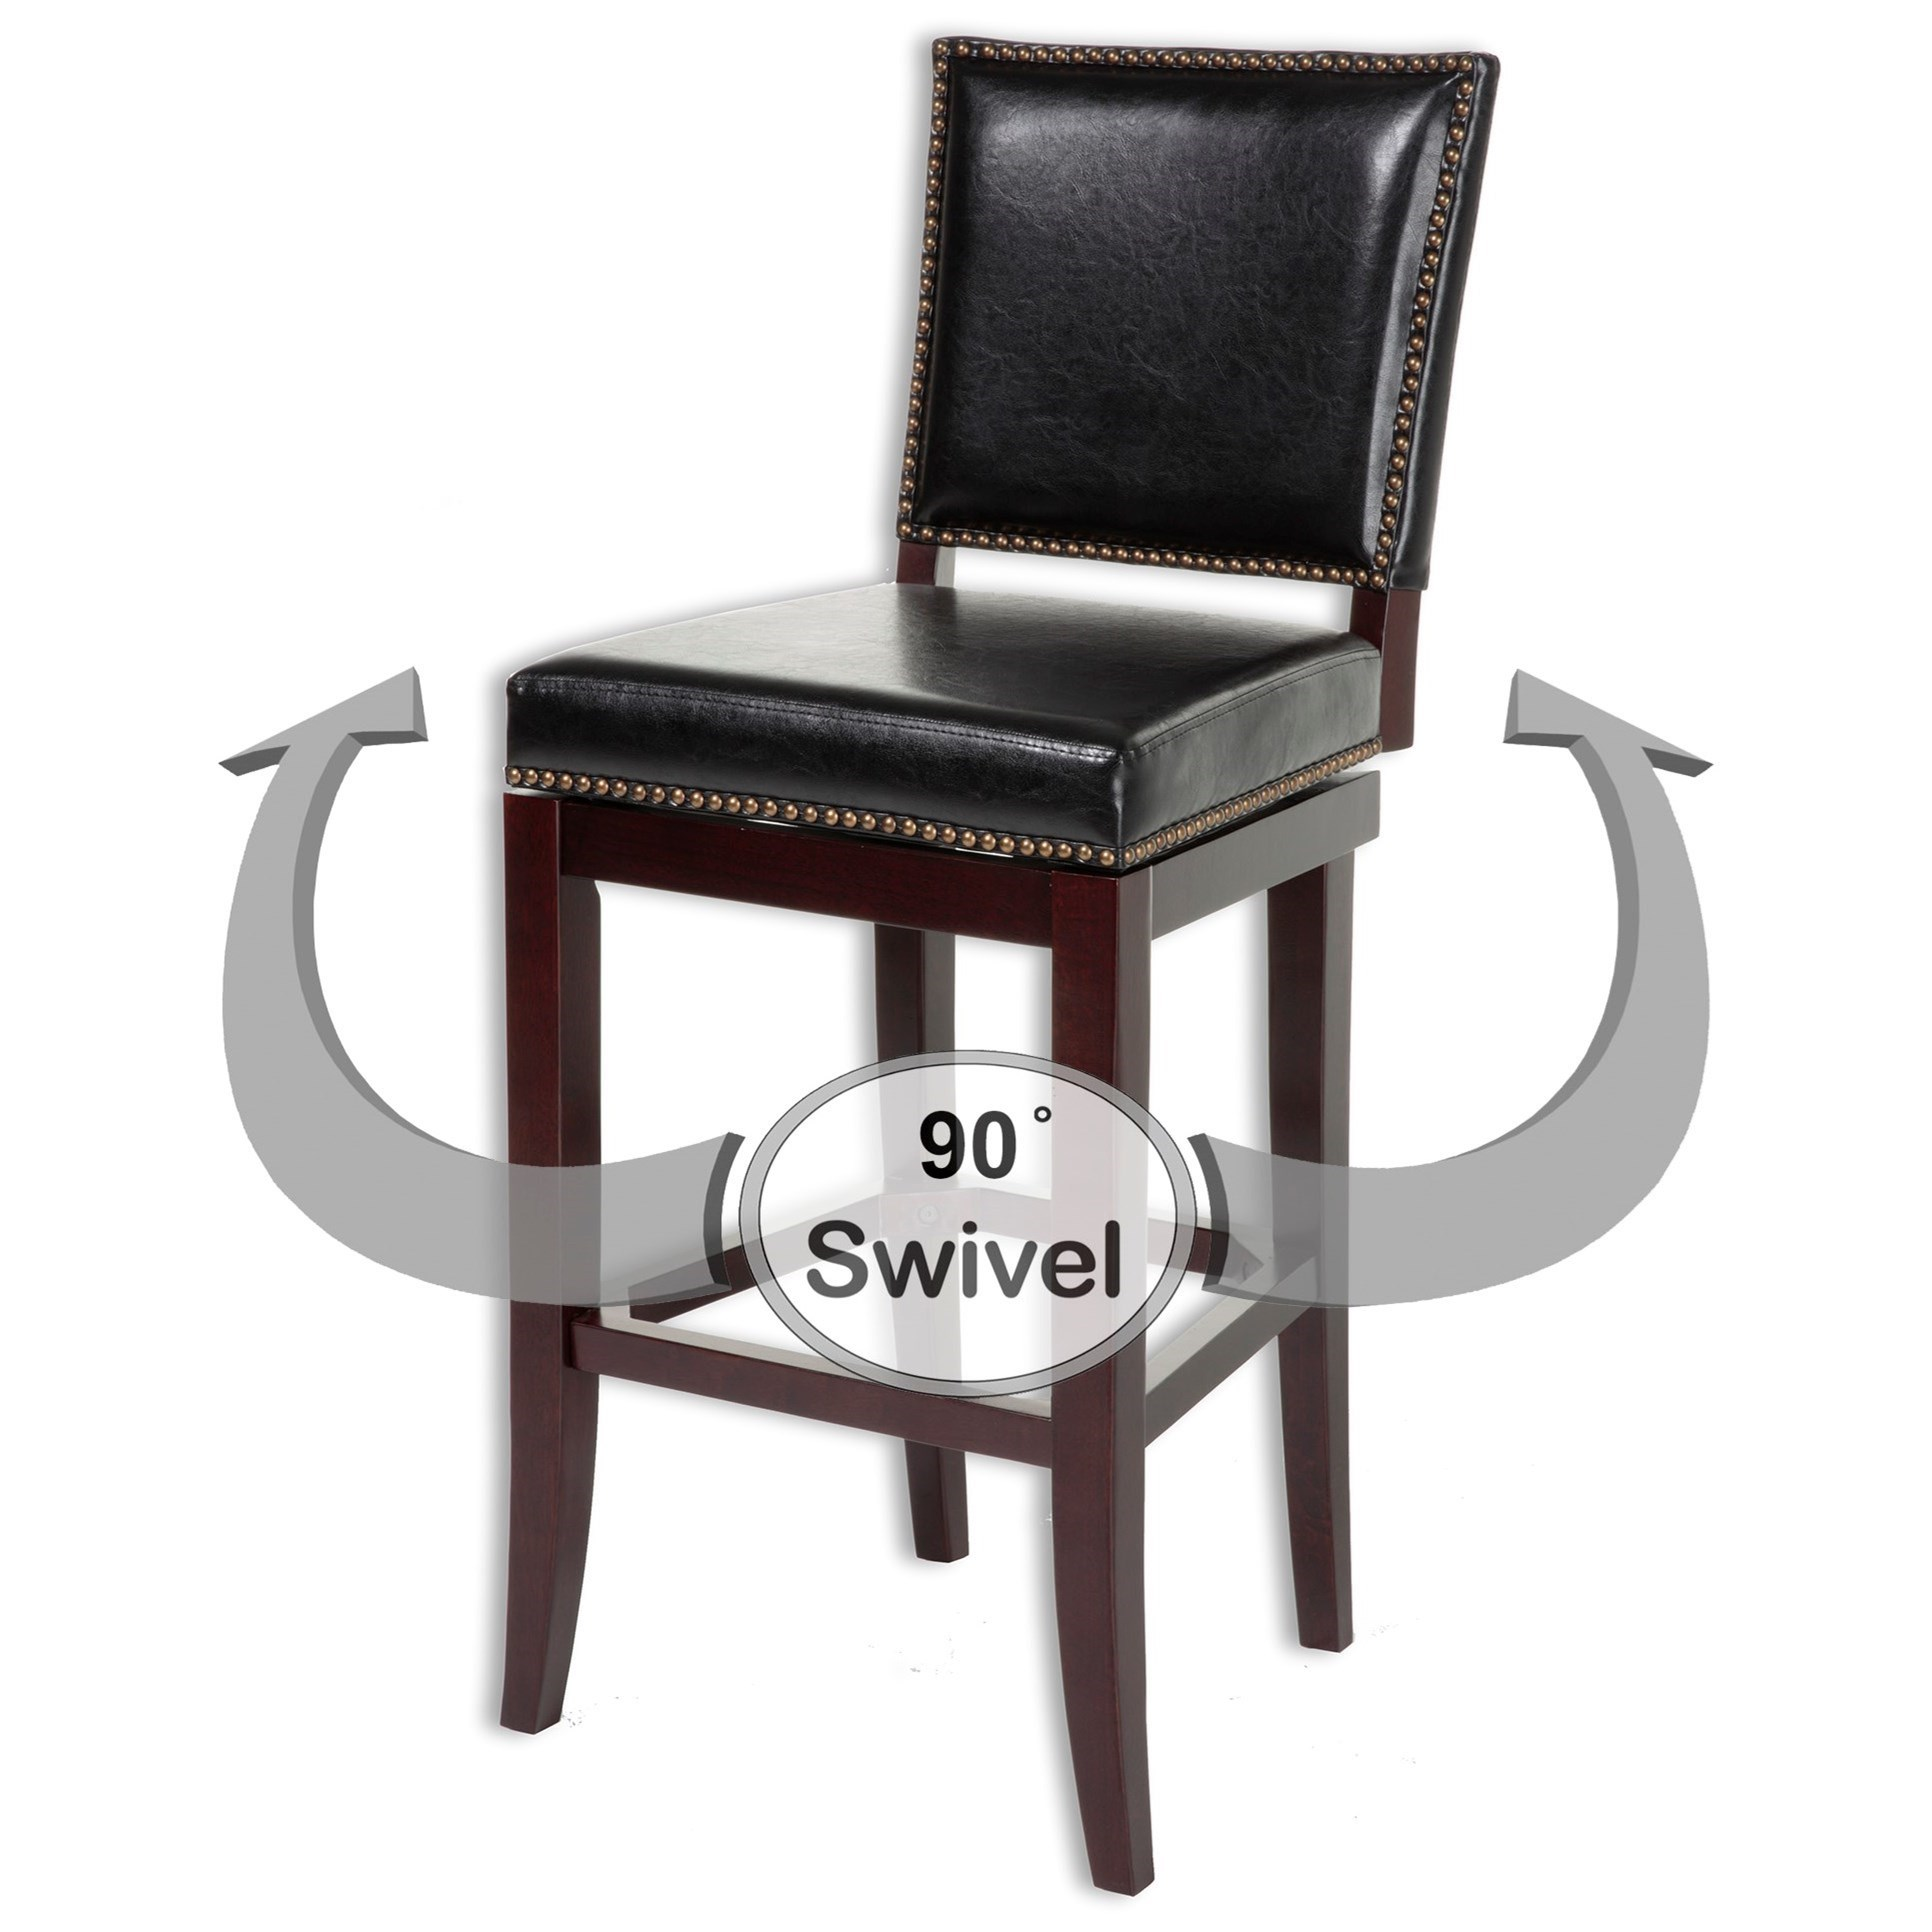 Fashion Bed Group Wood Barstools Sacramento Wood Counter Stool With Black Upholstered Nail Head